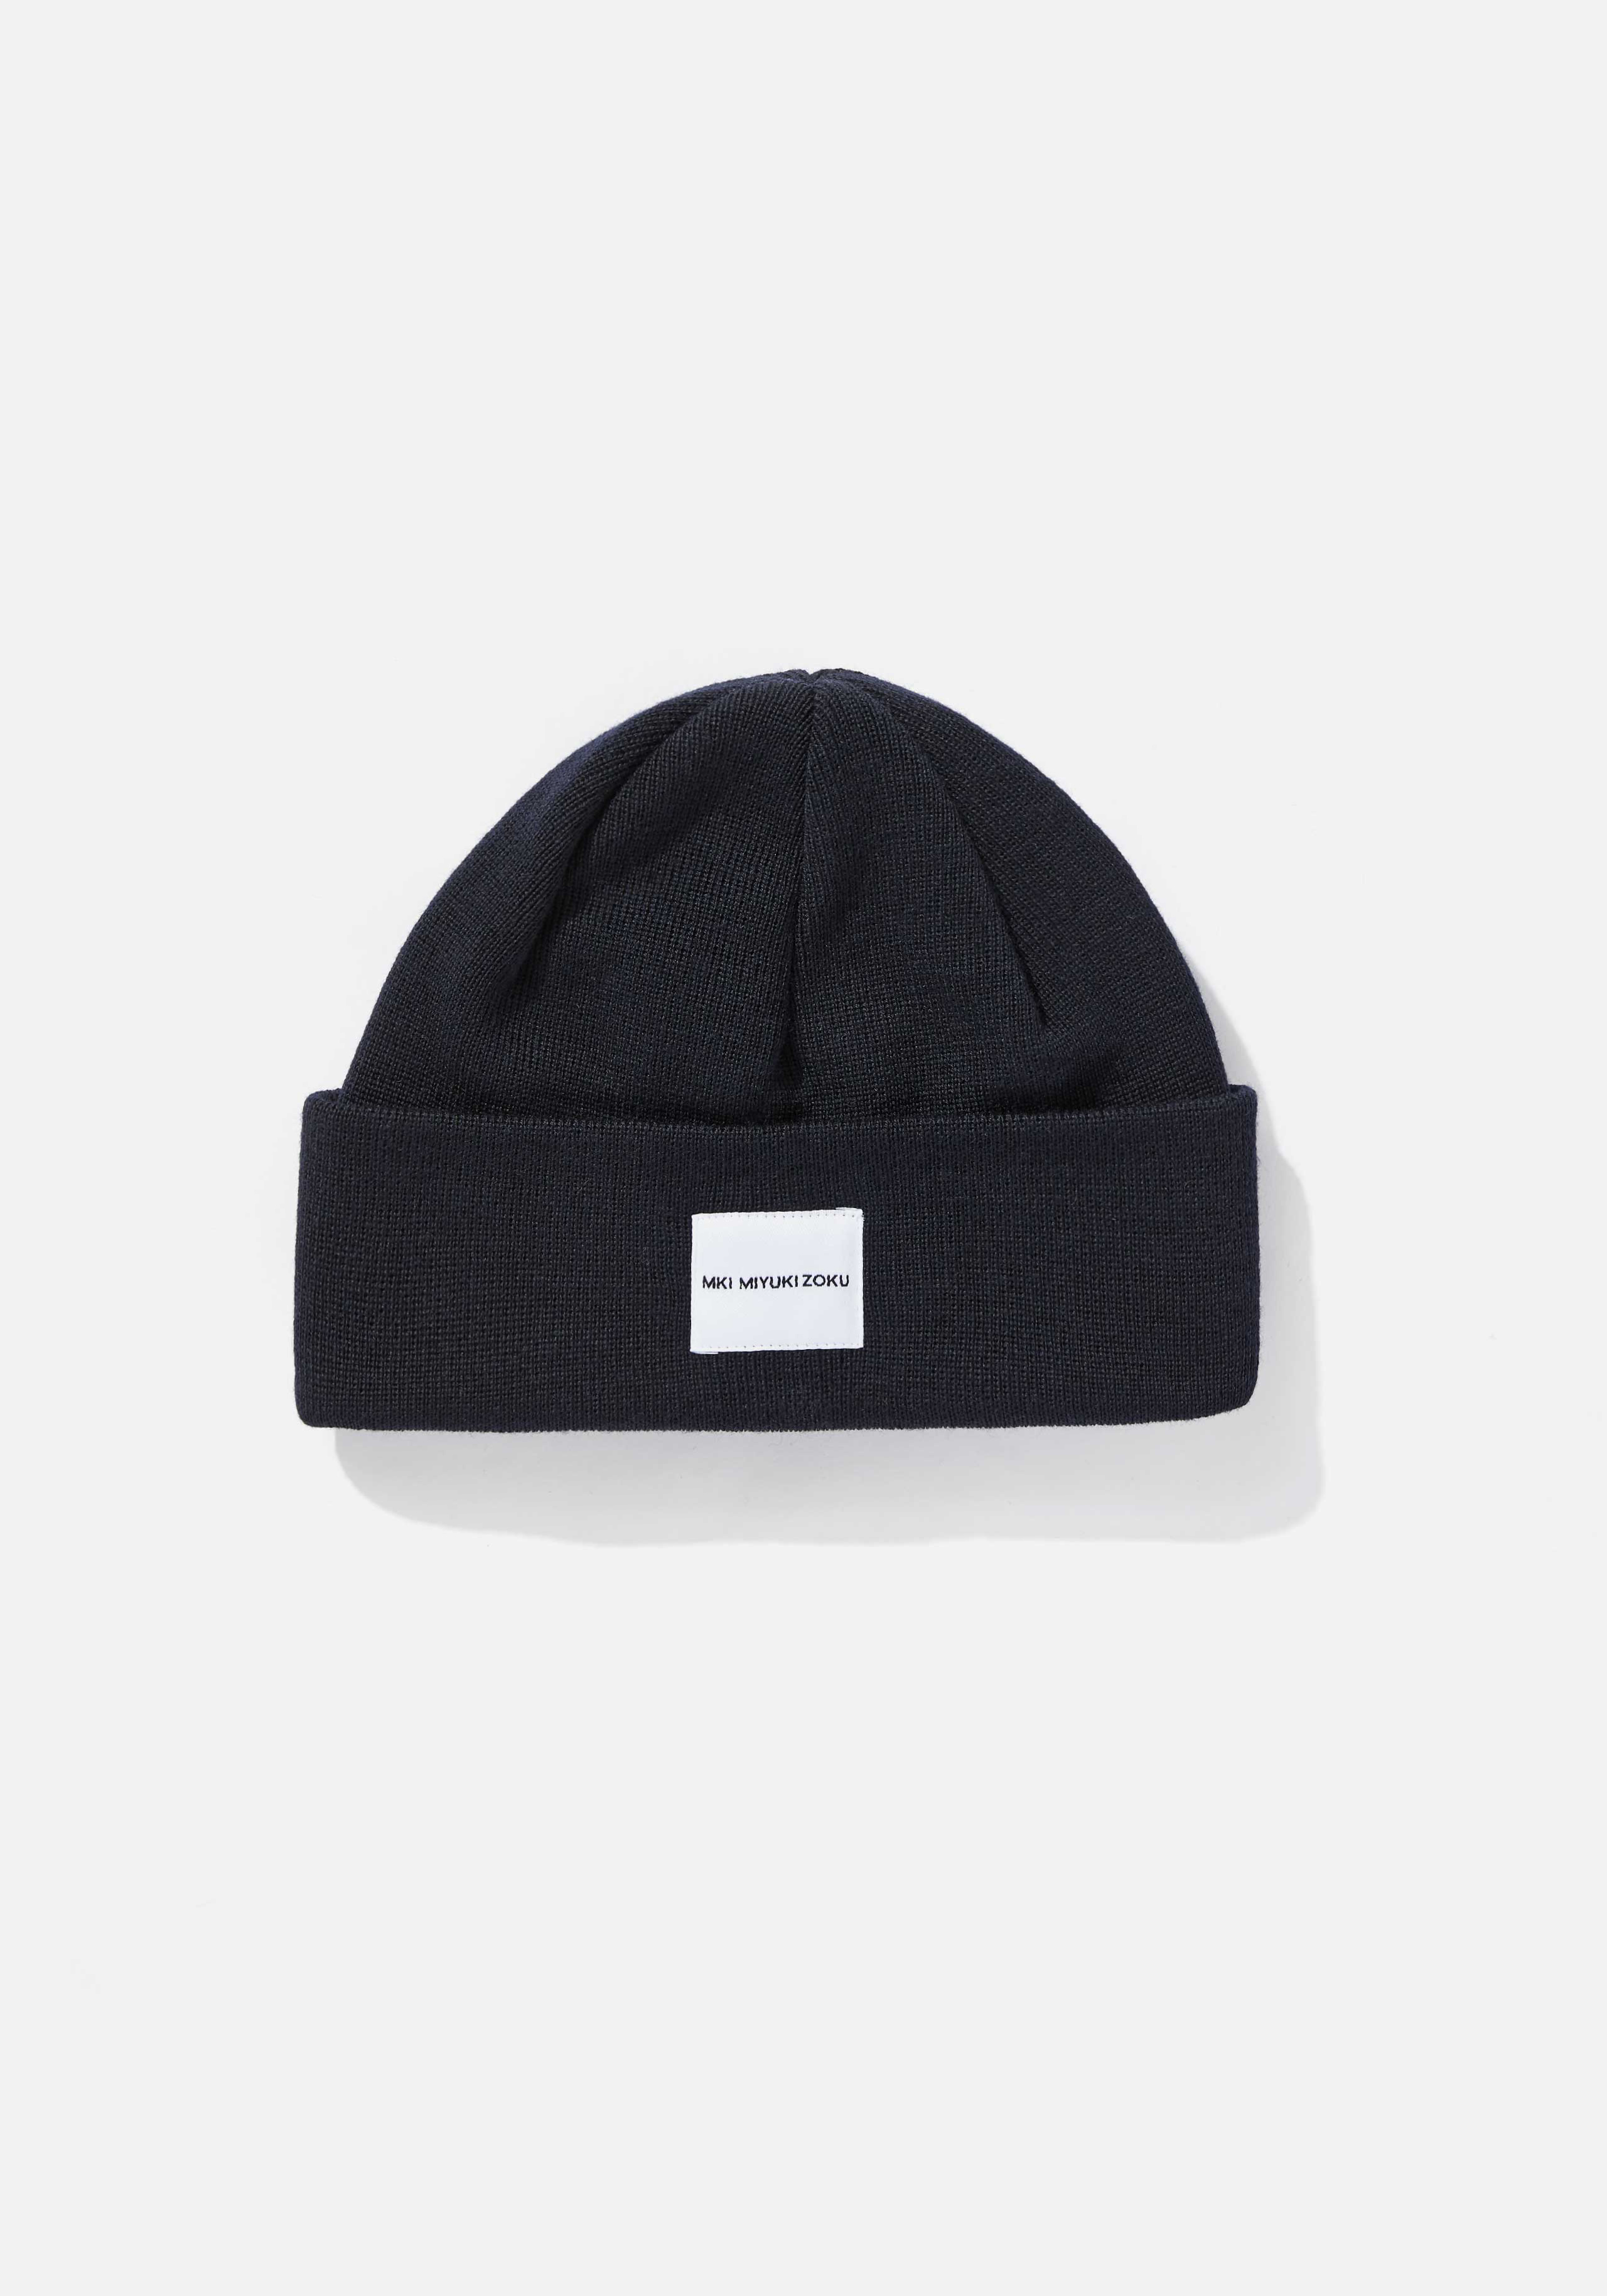 mki merino beanie short body 1